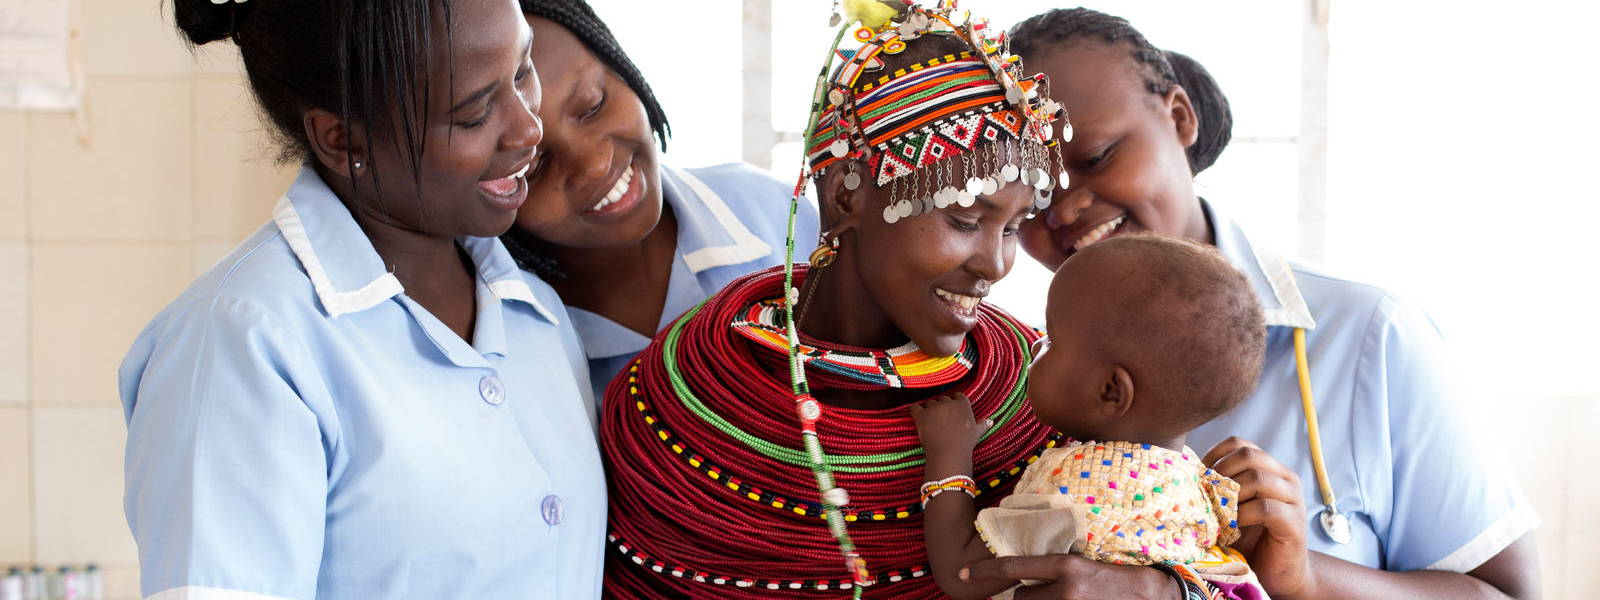 Nurses with mother and baby in Kenya, Africa